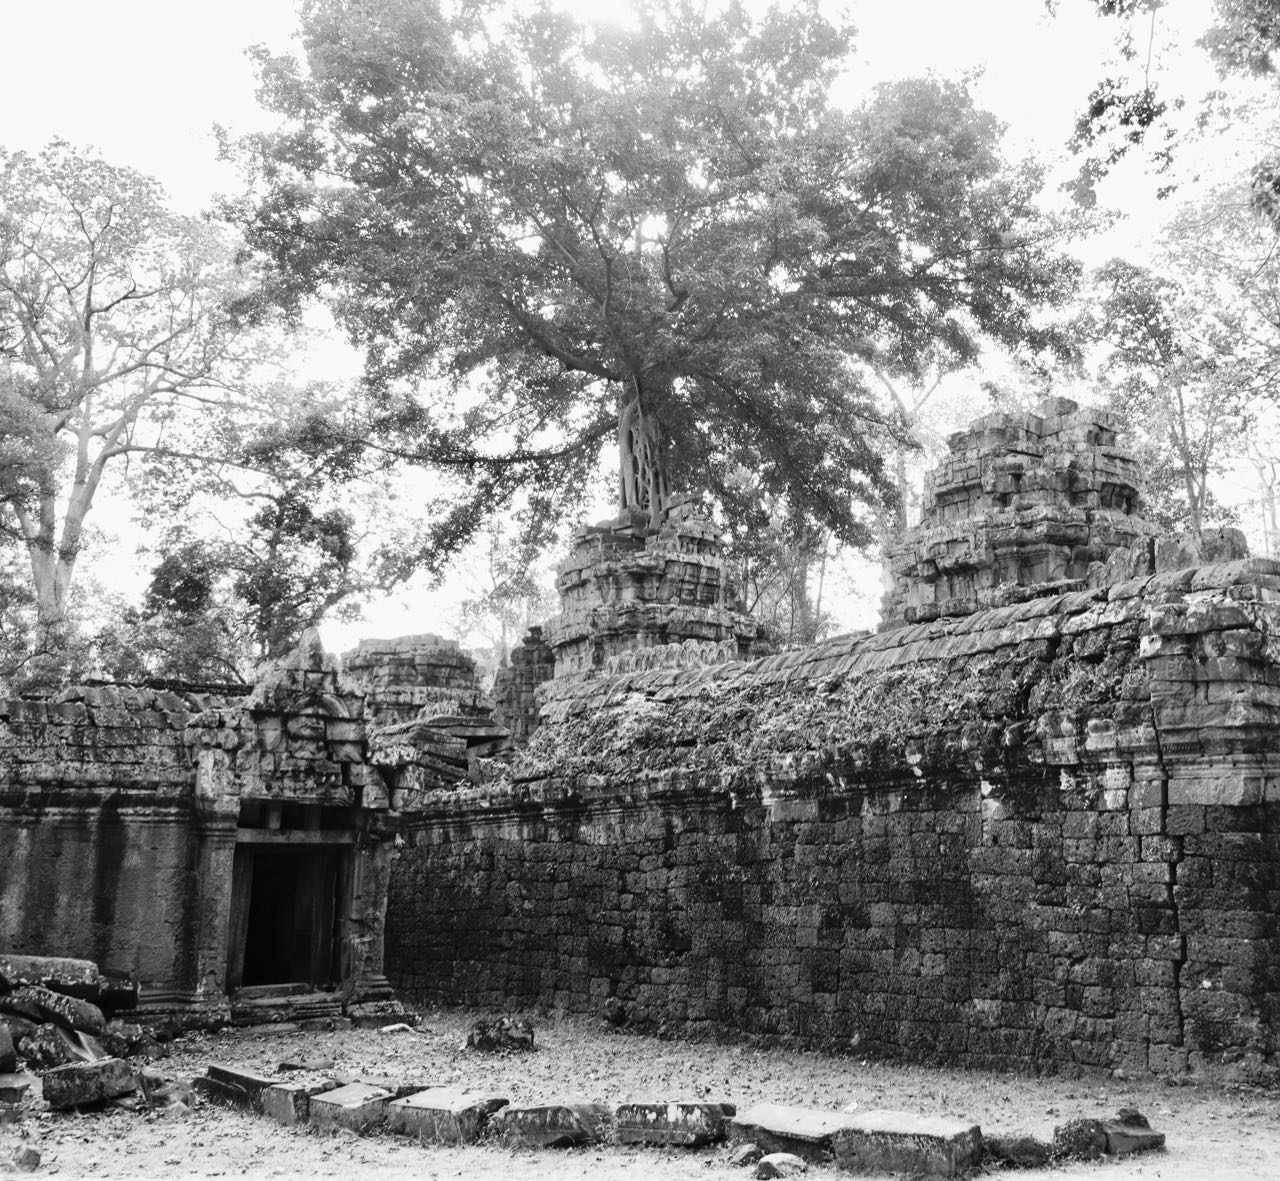 Ta Promh Temple walls Angkor Kambodsja Siem Reap review